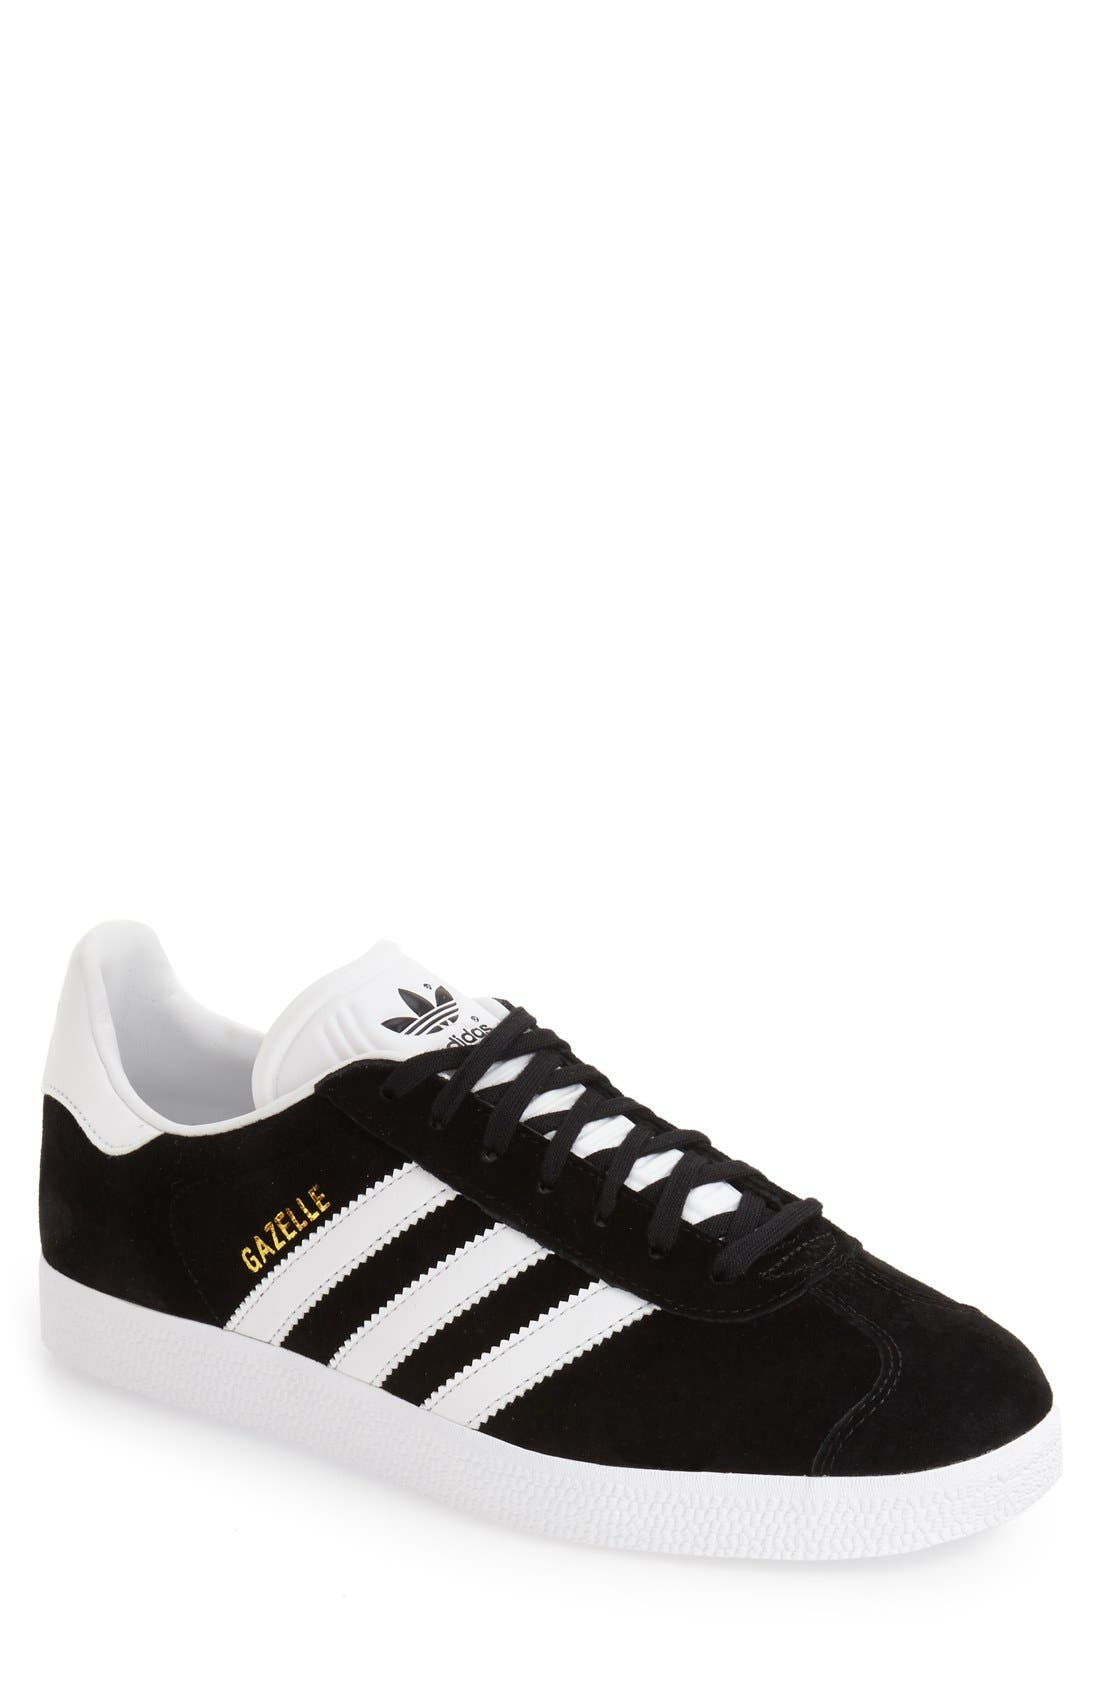 Gazelle Sneaker,                             Main thumbnail 1, color,                             Black